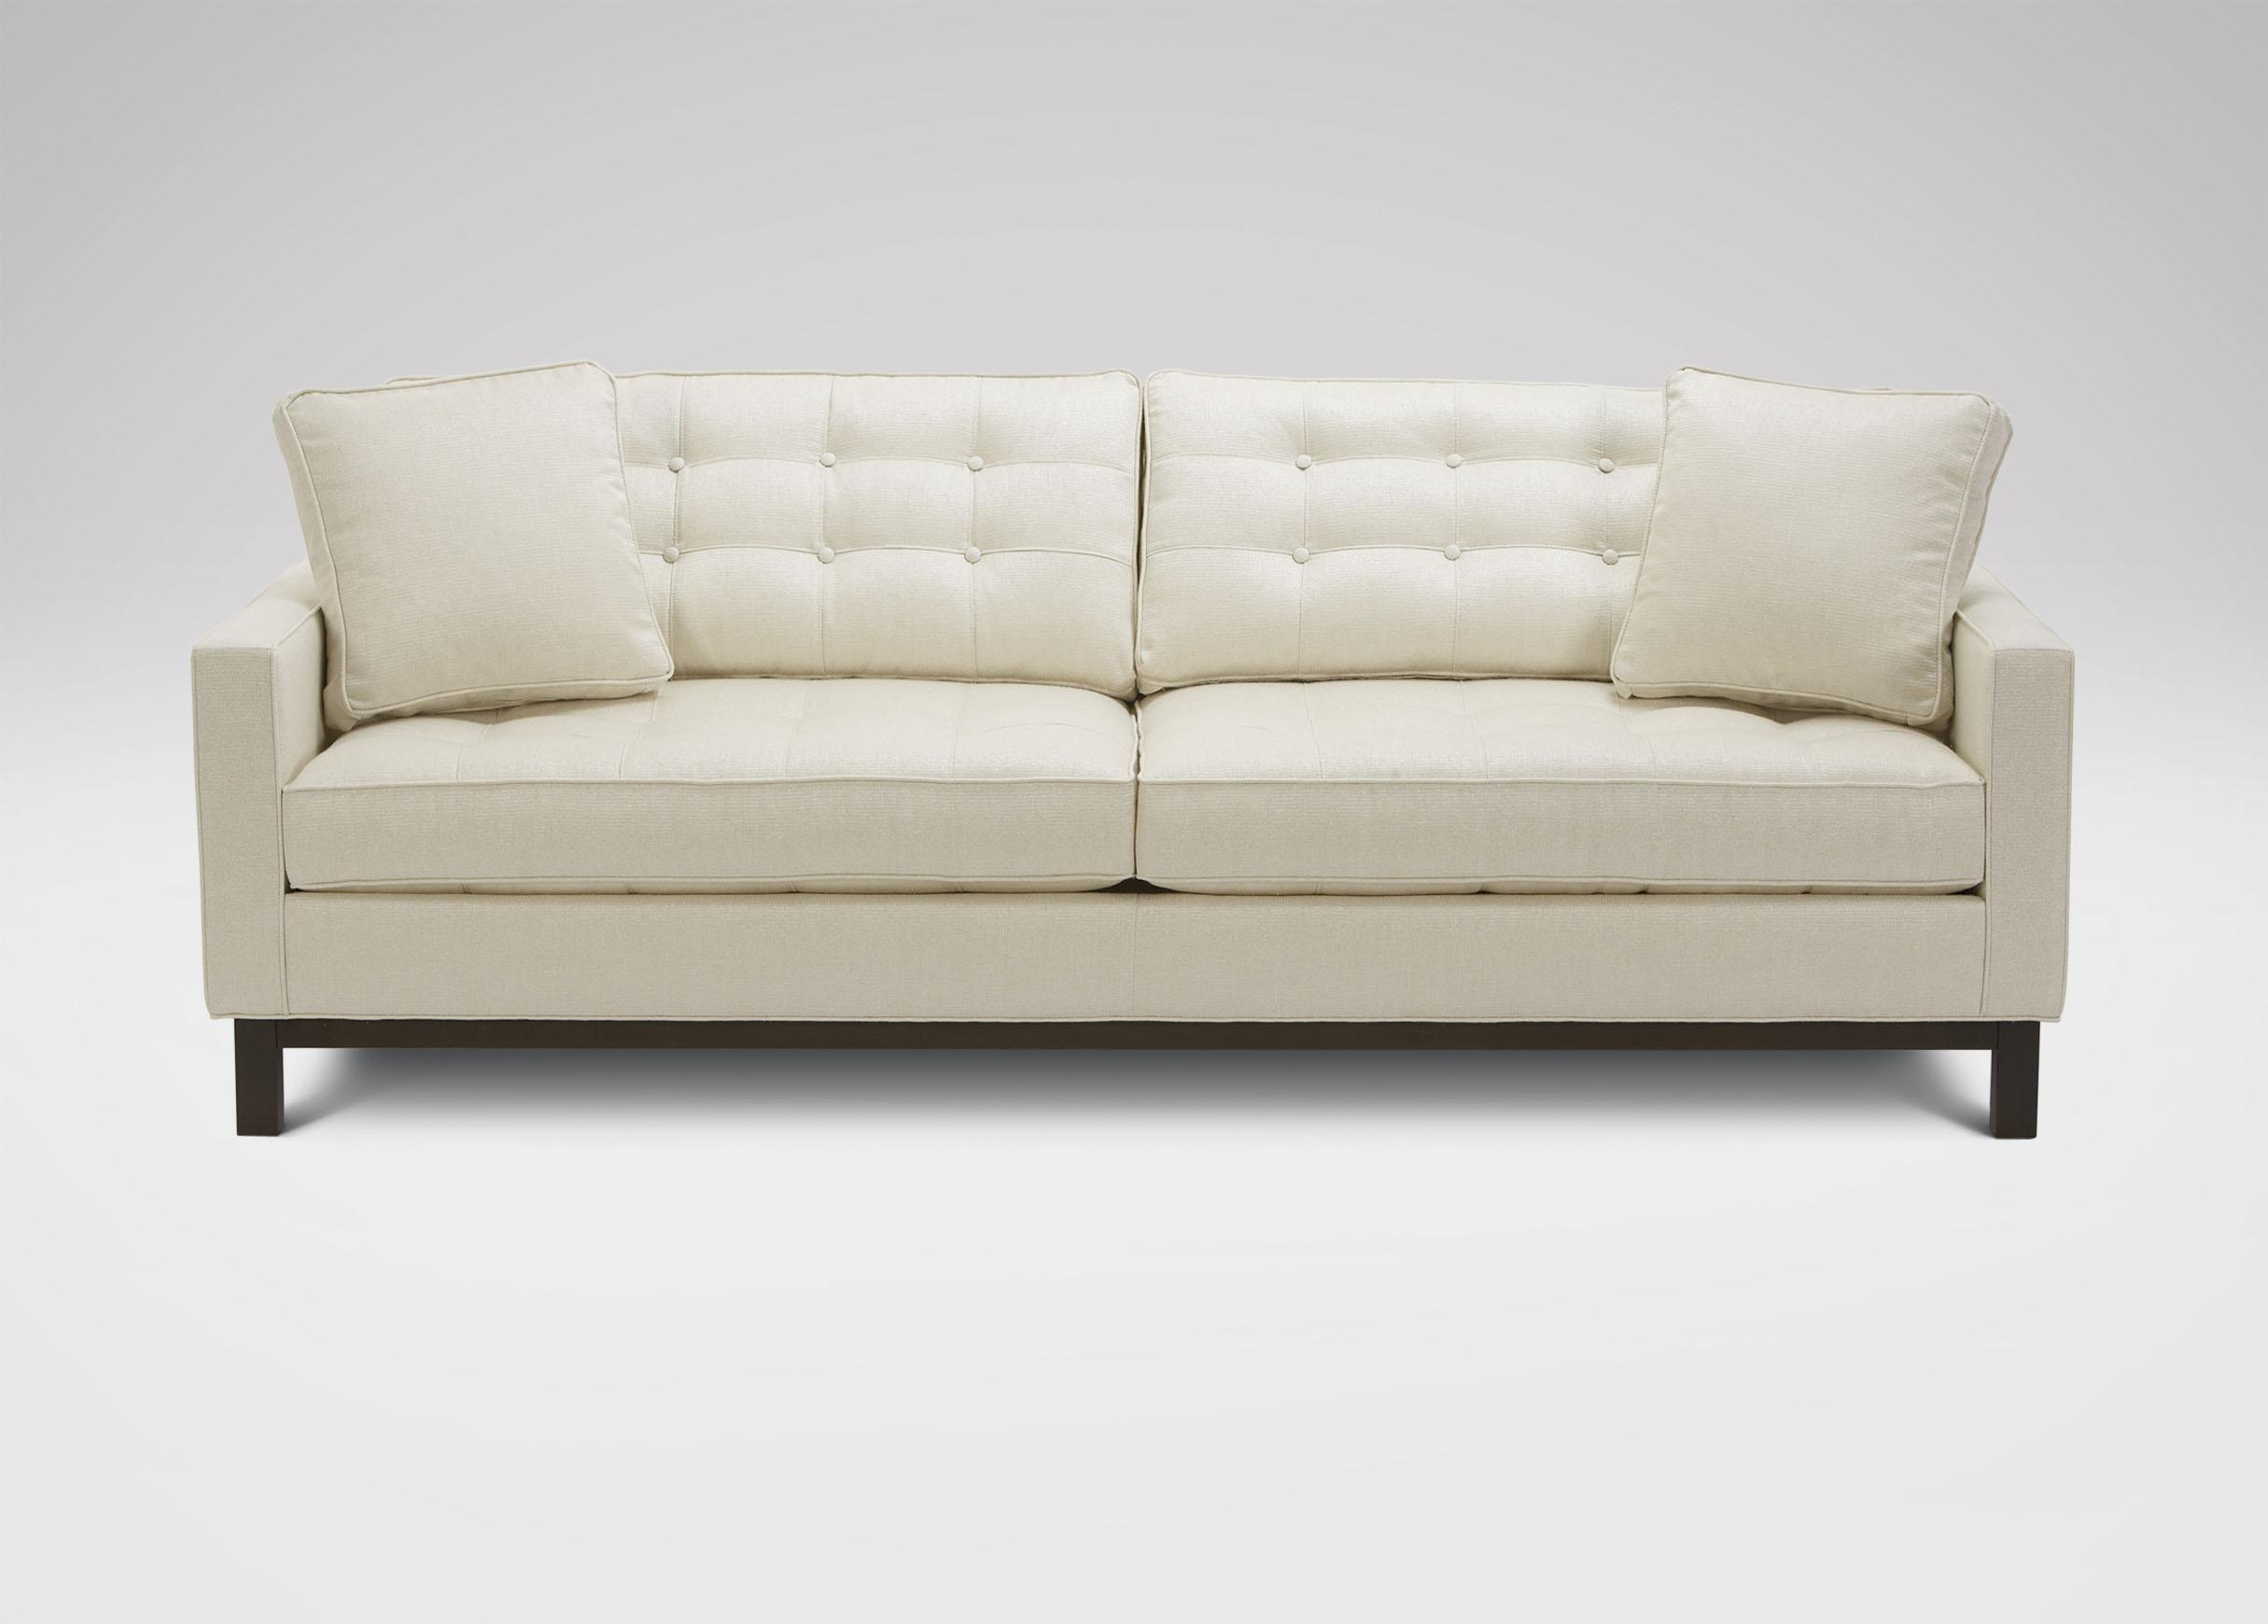 Sofas: Excellent Living Room Sofas Design With Ethan Allen Sofa With Ethan Allen Whitney Sofas (View 14 of 20)